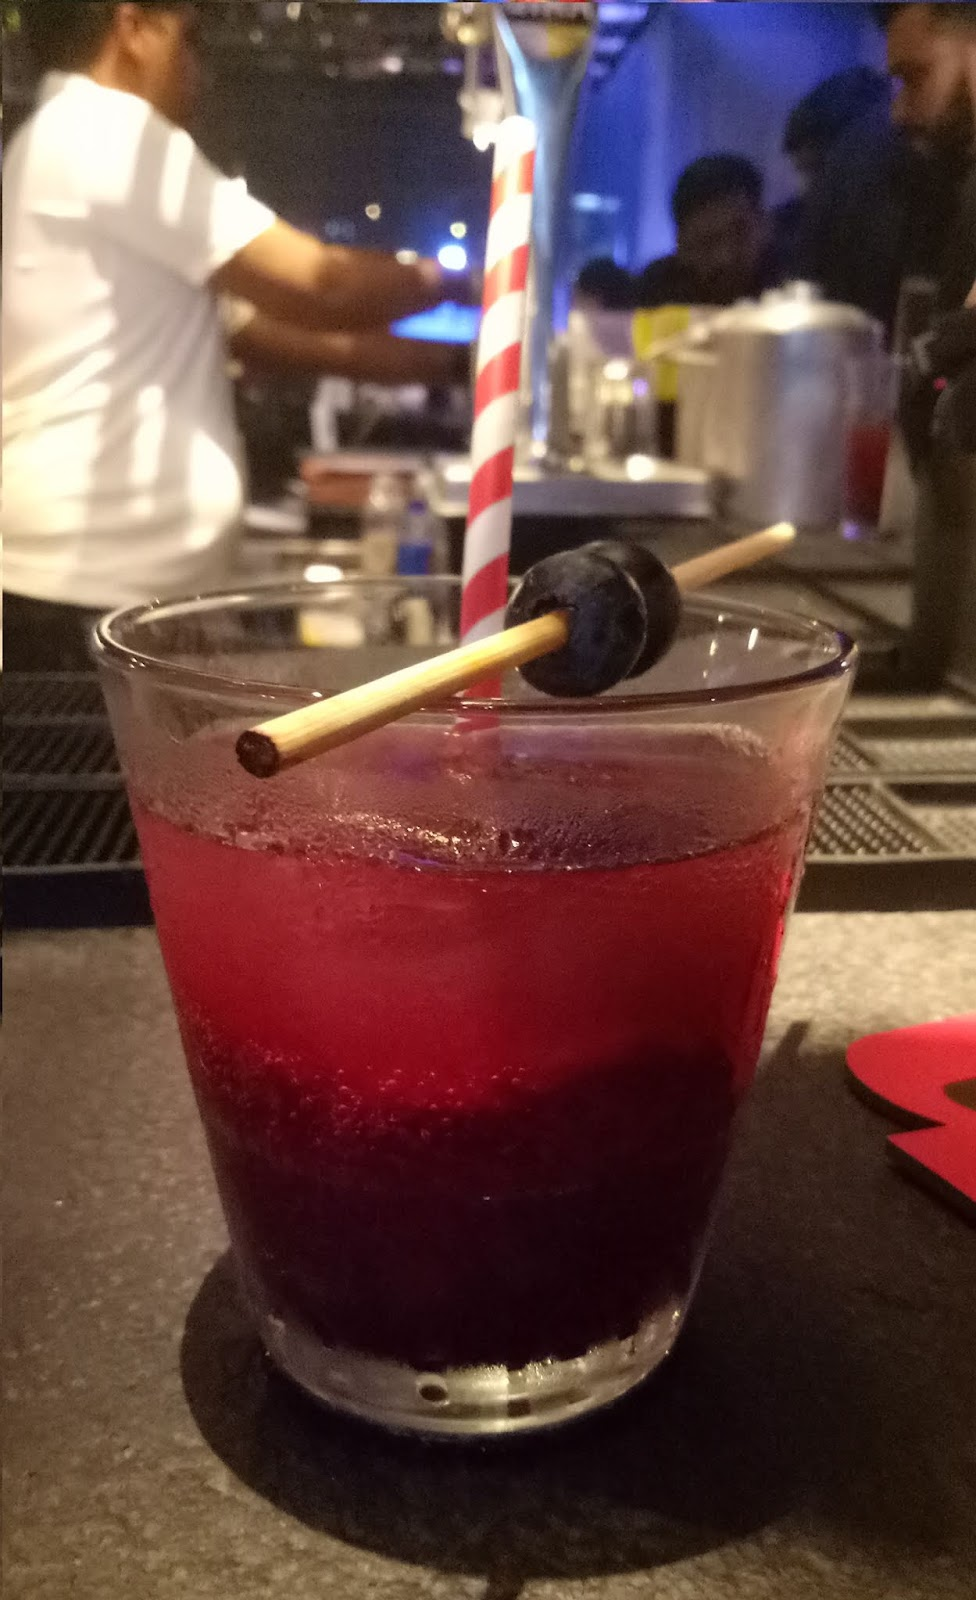 Anusaya Fresh Launched Blueberry Cocktail in India - Phoenix